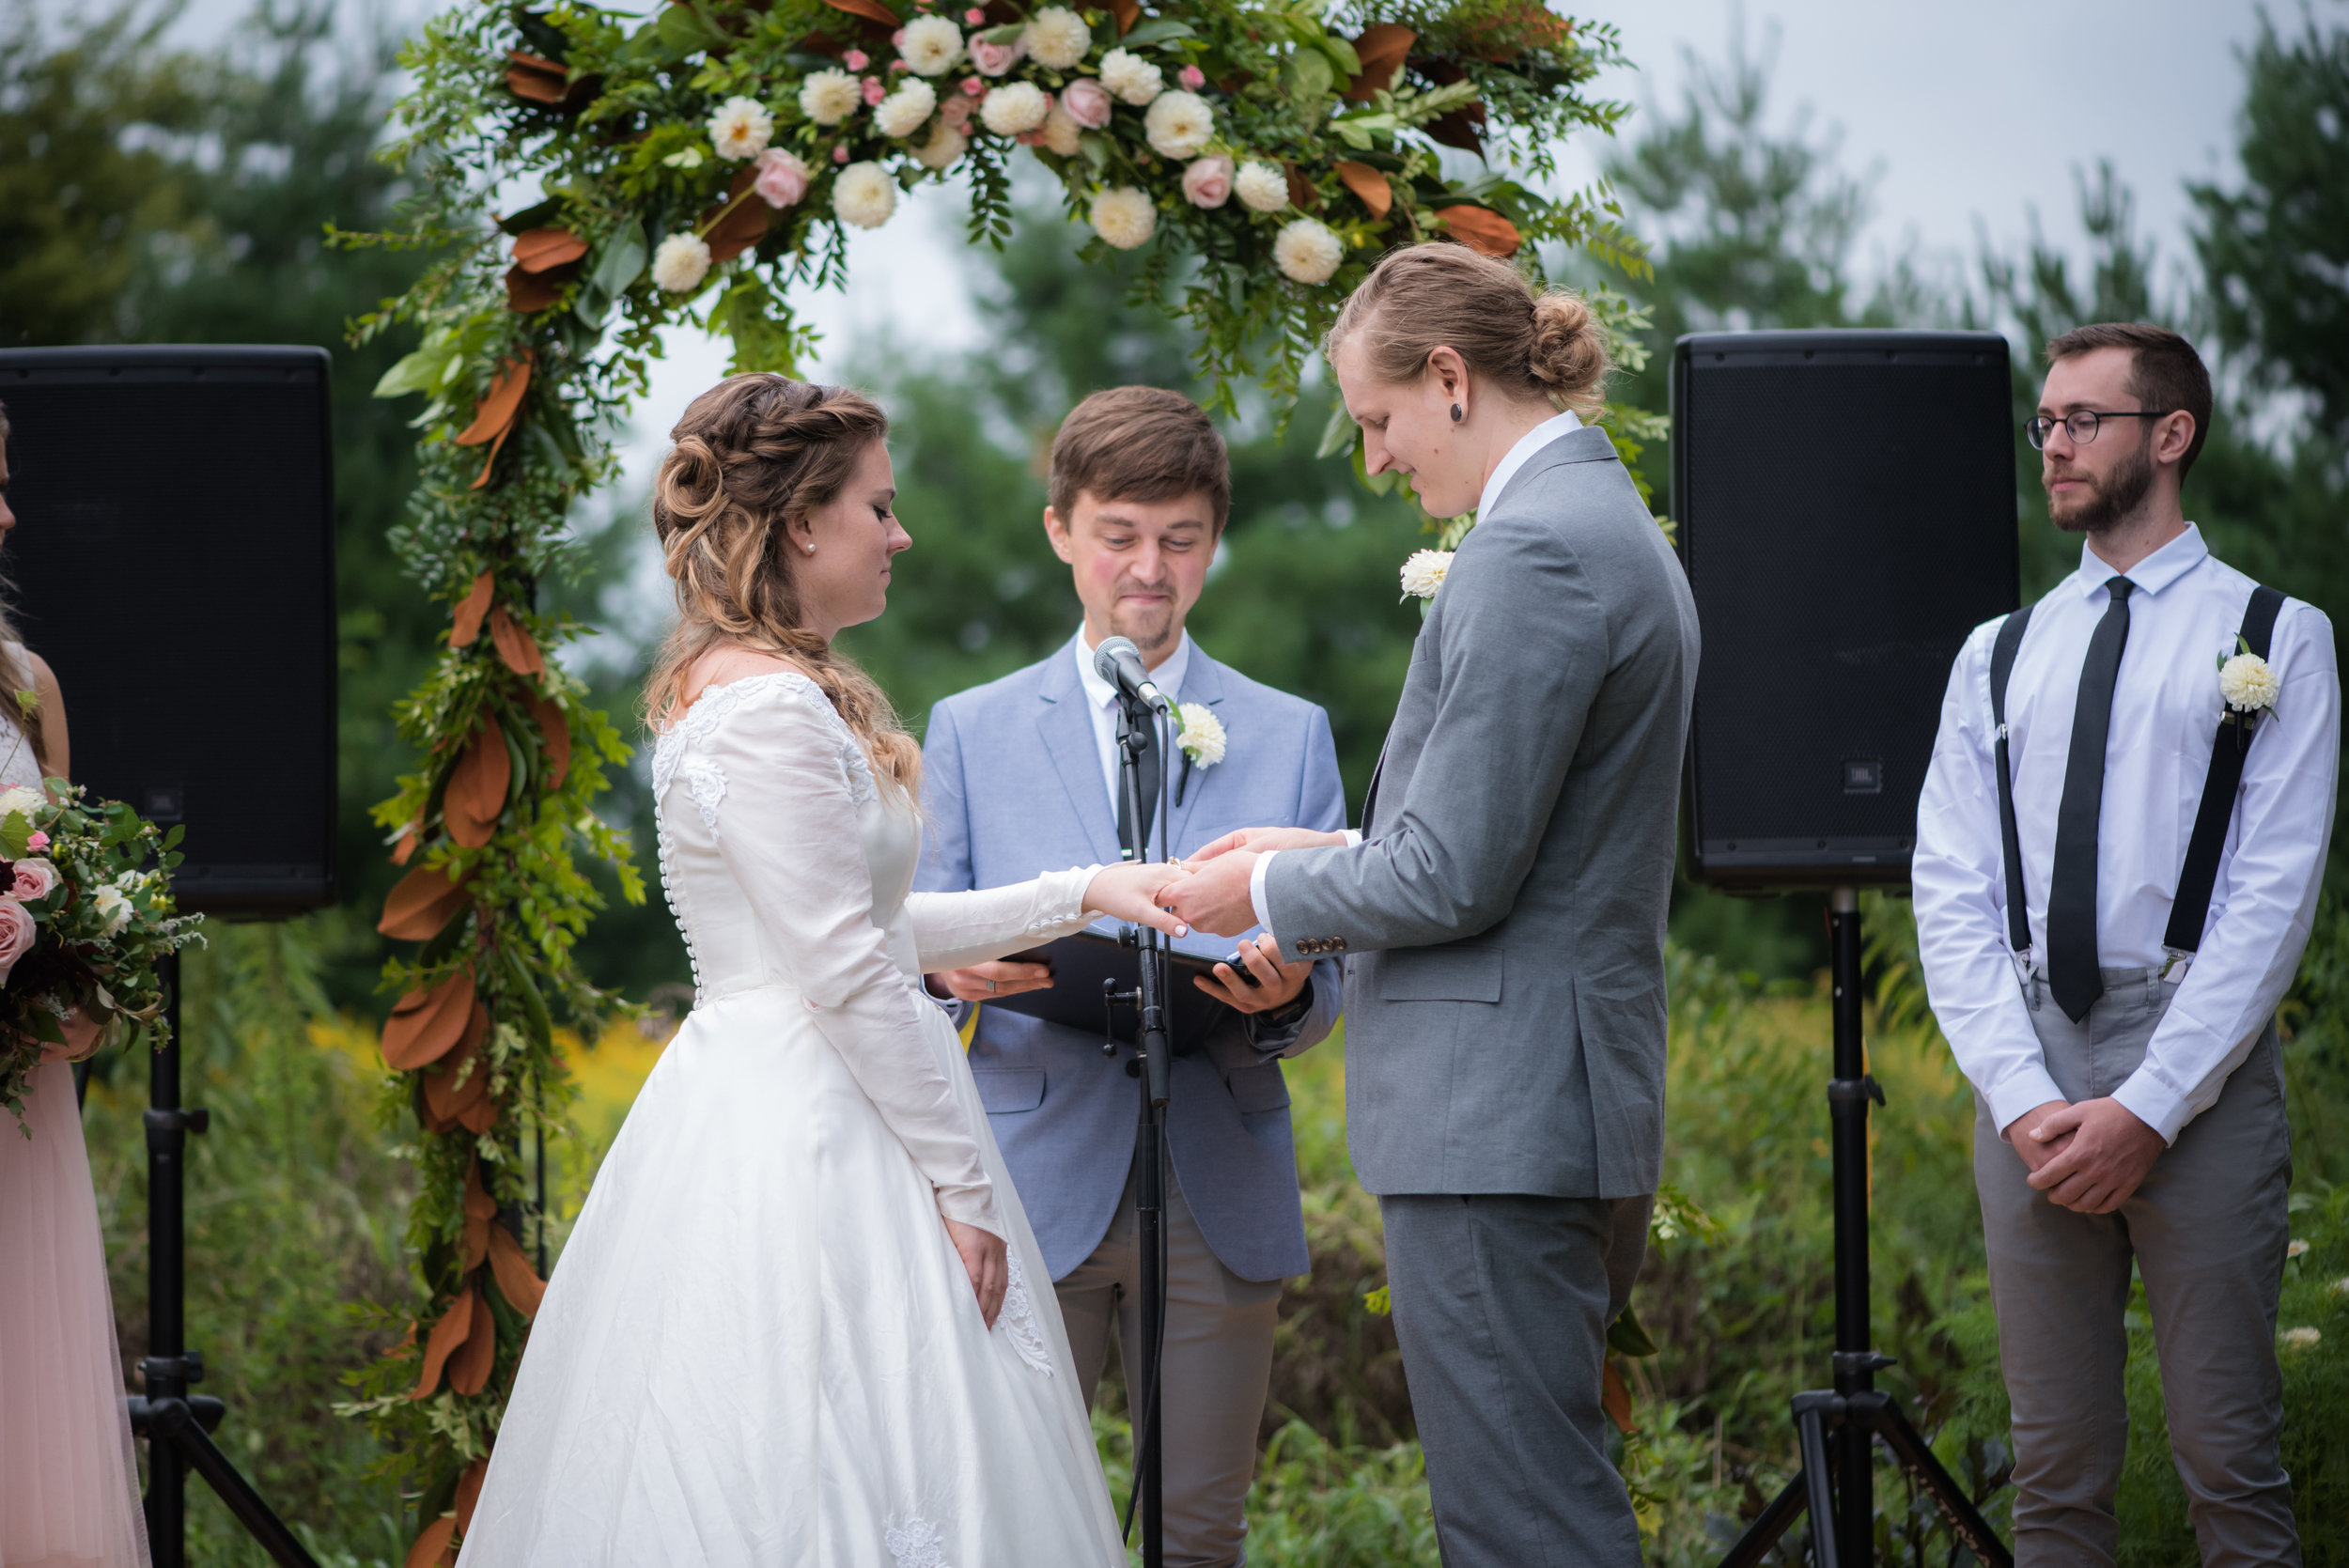 ring exchange ceremony // Backyard Wedding in Northfield, MN :: Elliot Malcom Photography :: Megan + Andrew :: Apres Tent Rental :: GastroTruck Catering :: Sixpence Events & Planning .jpg